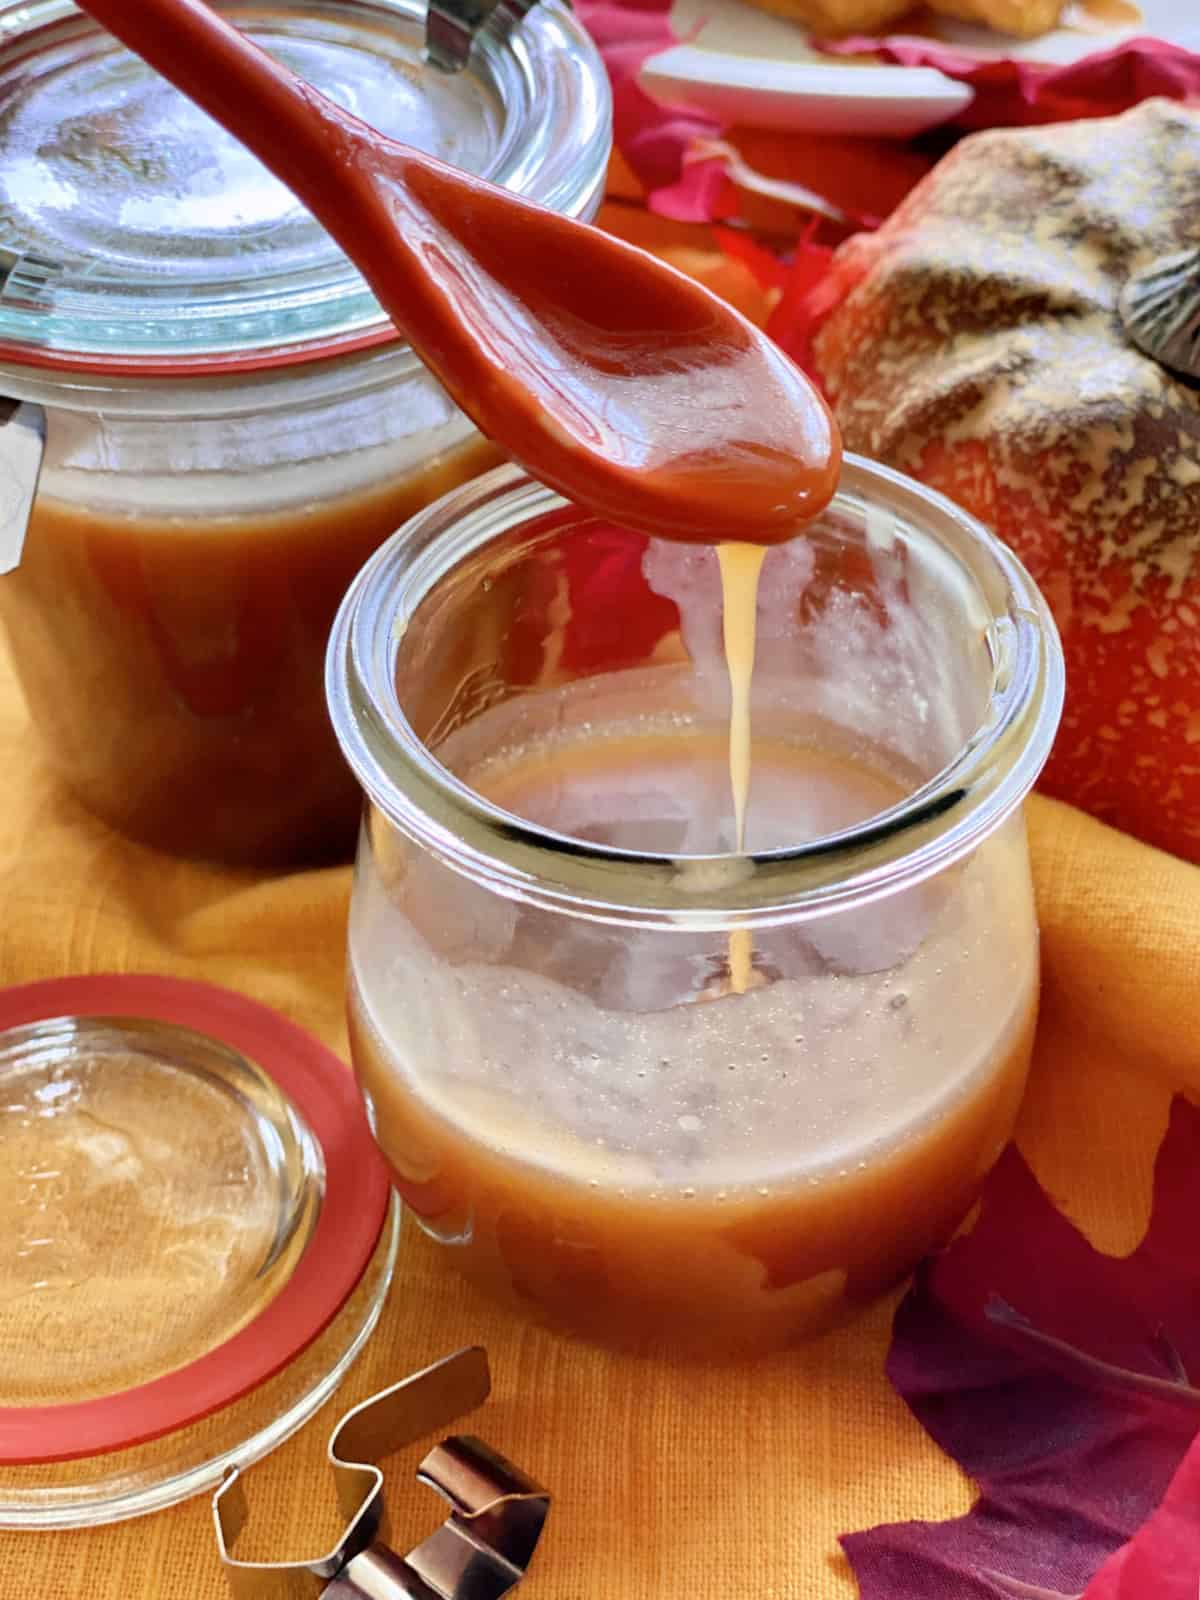 Two glass jars filled with caramel sauce with an orange spoon dripping caramel.